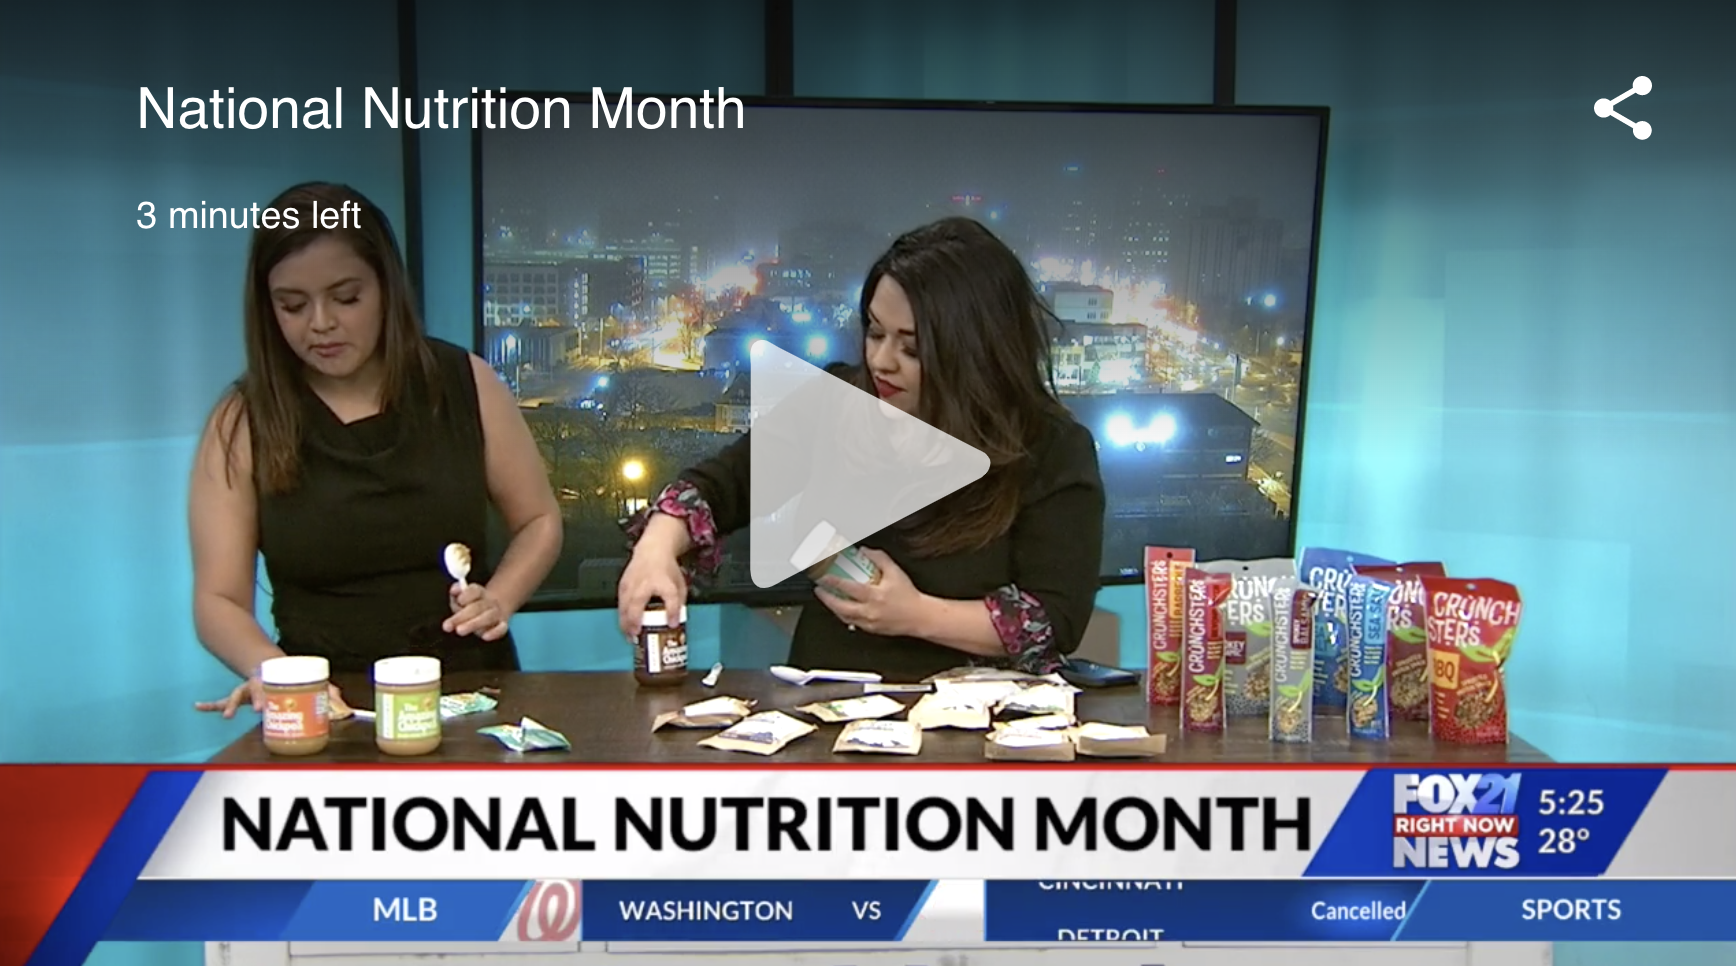 National Nutrition Month on FOX 21 – Colorado Springs, CO